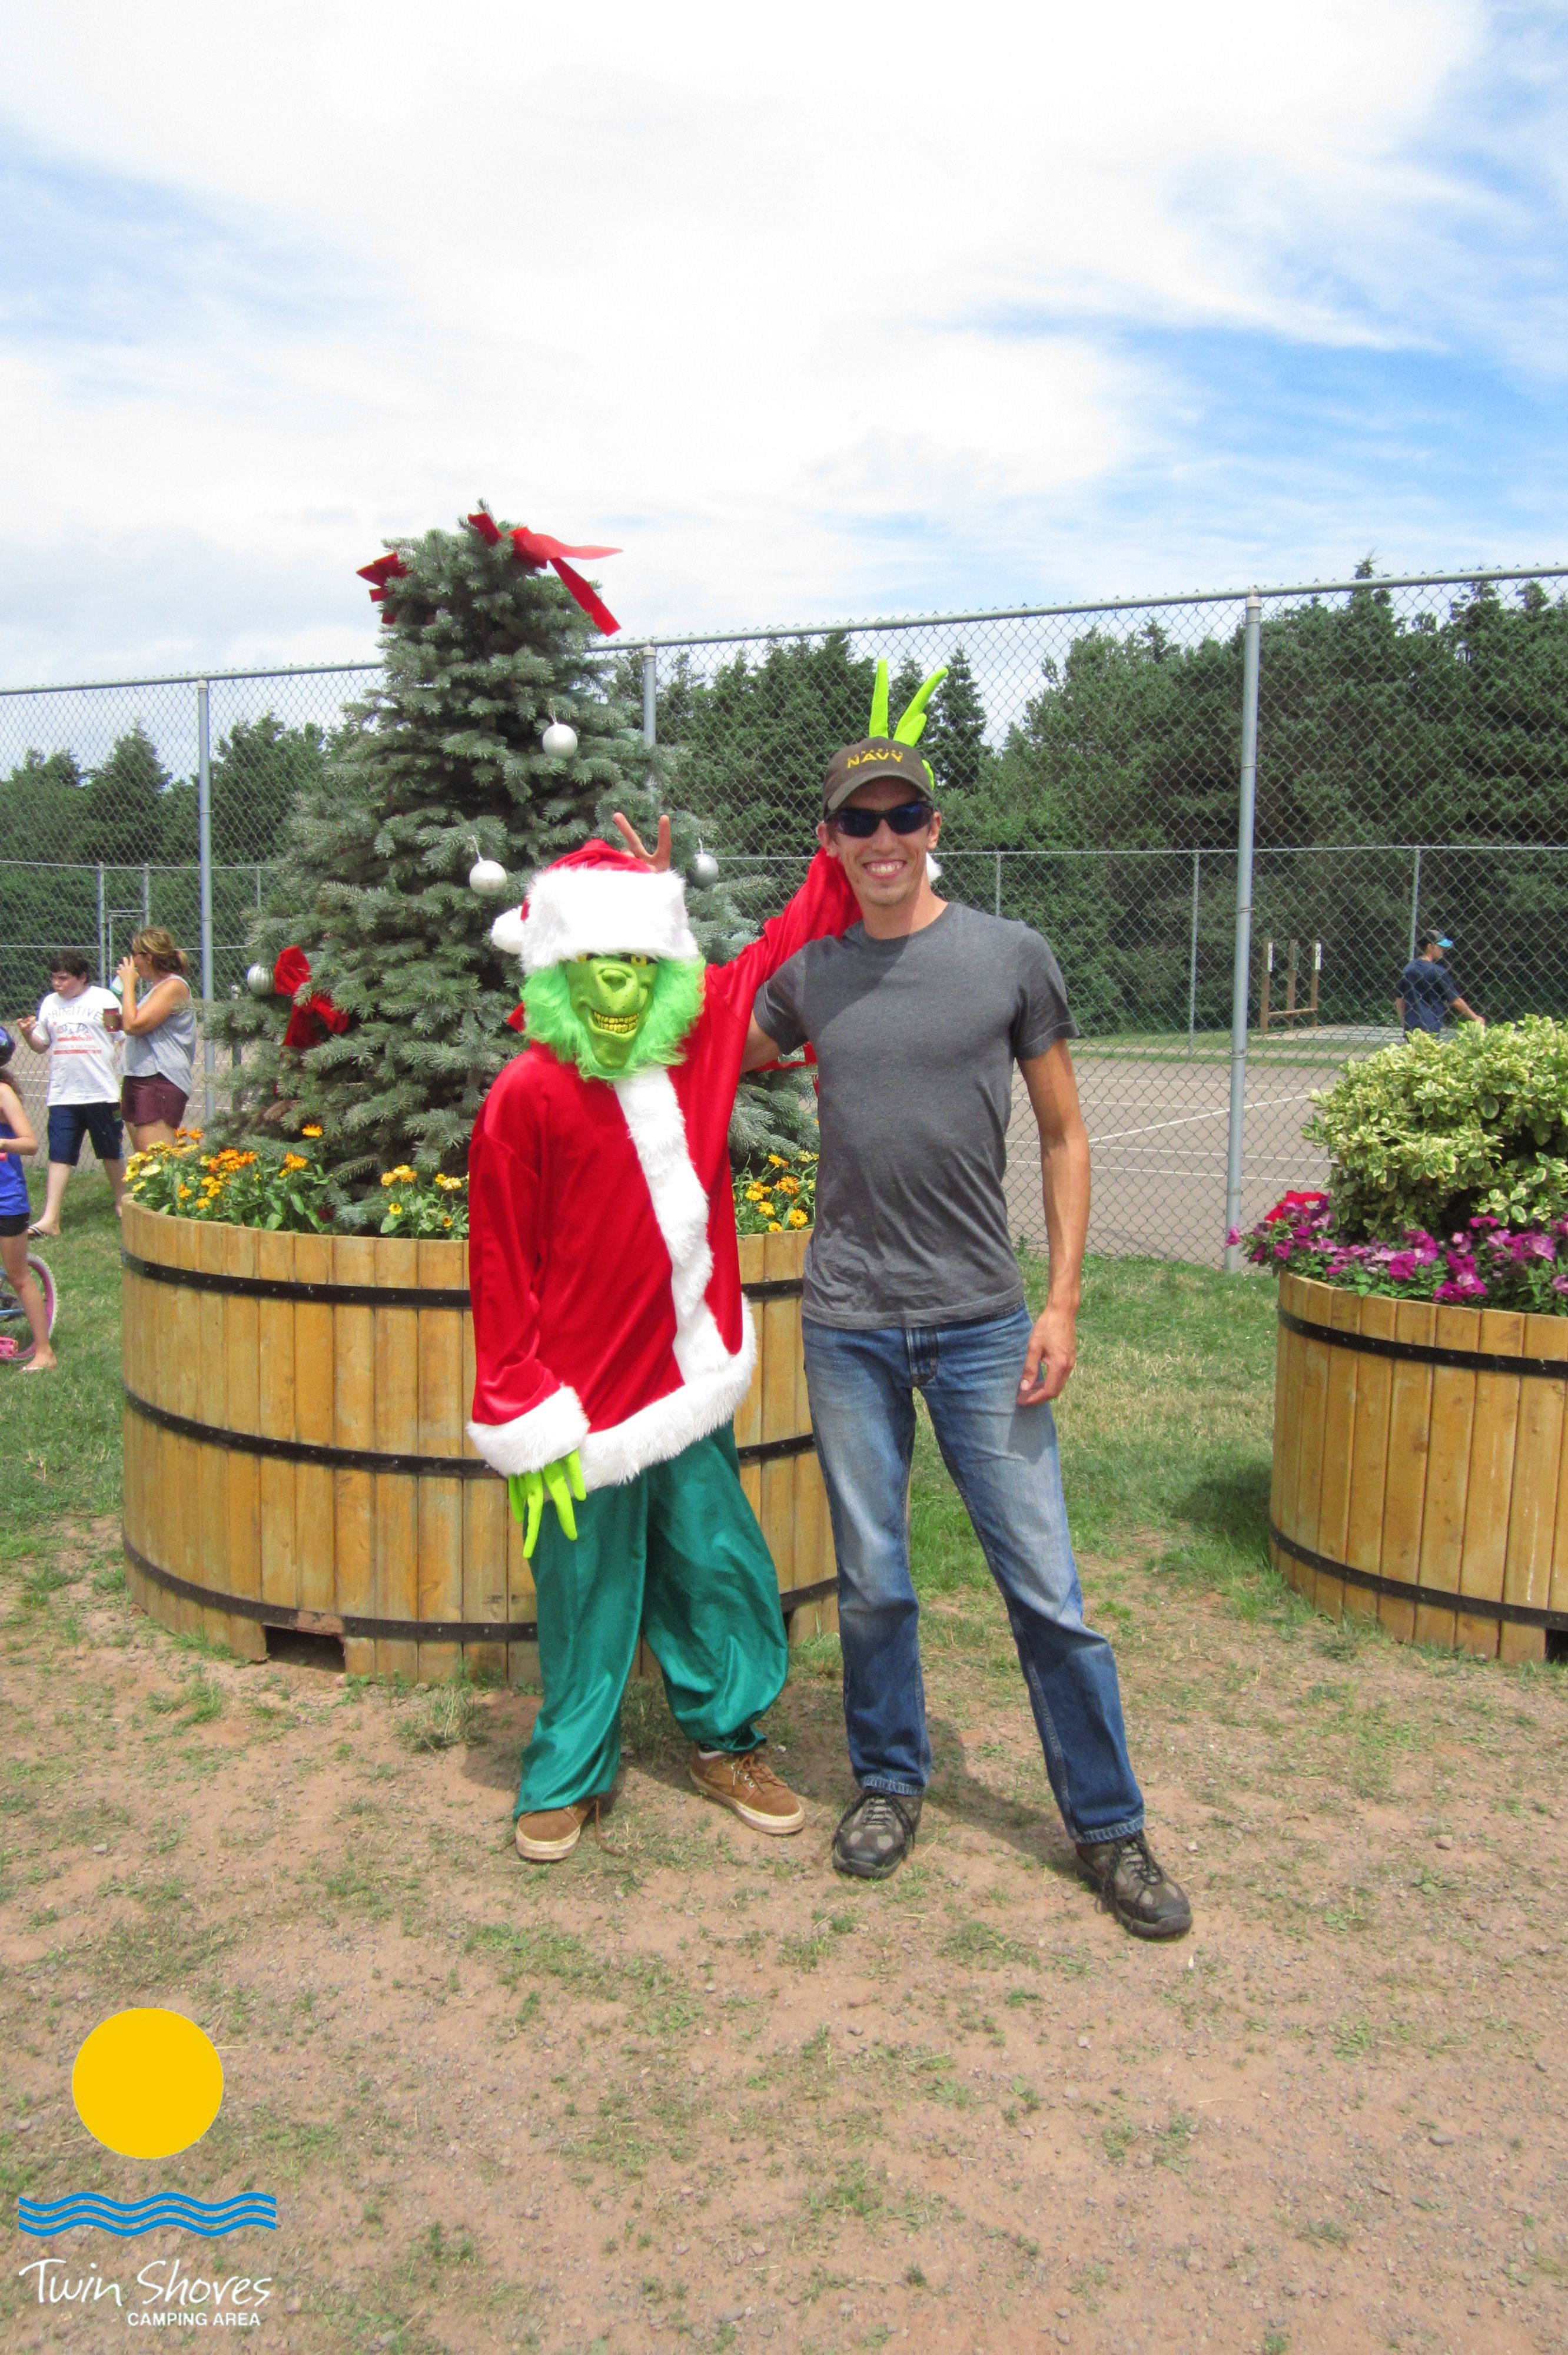 Christmas In July Camping.Christmas In July 2016 With The Grinch Twin Shores